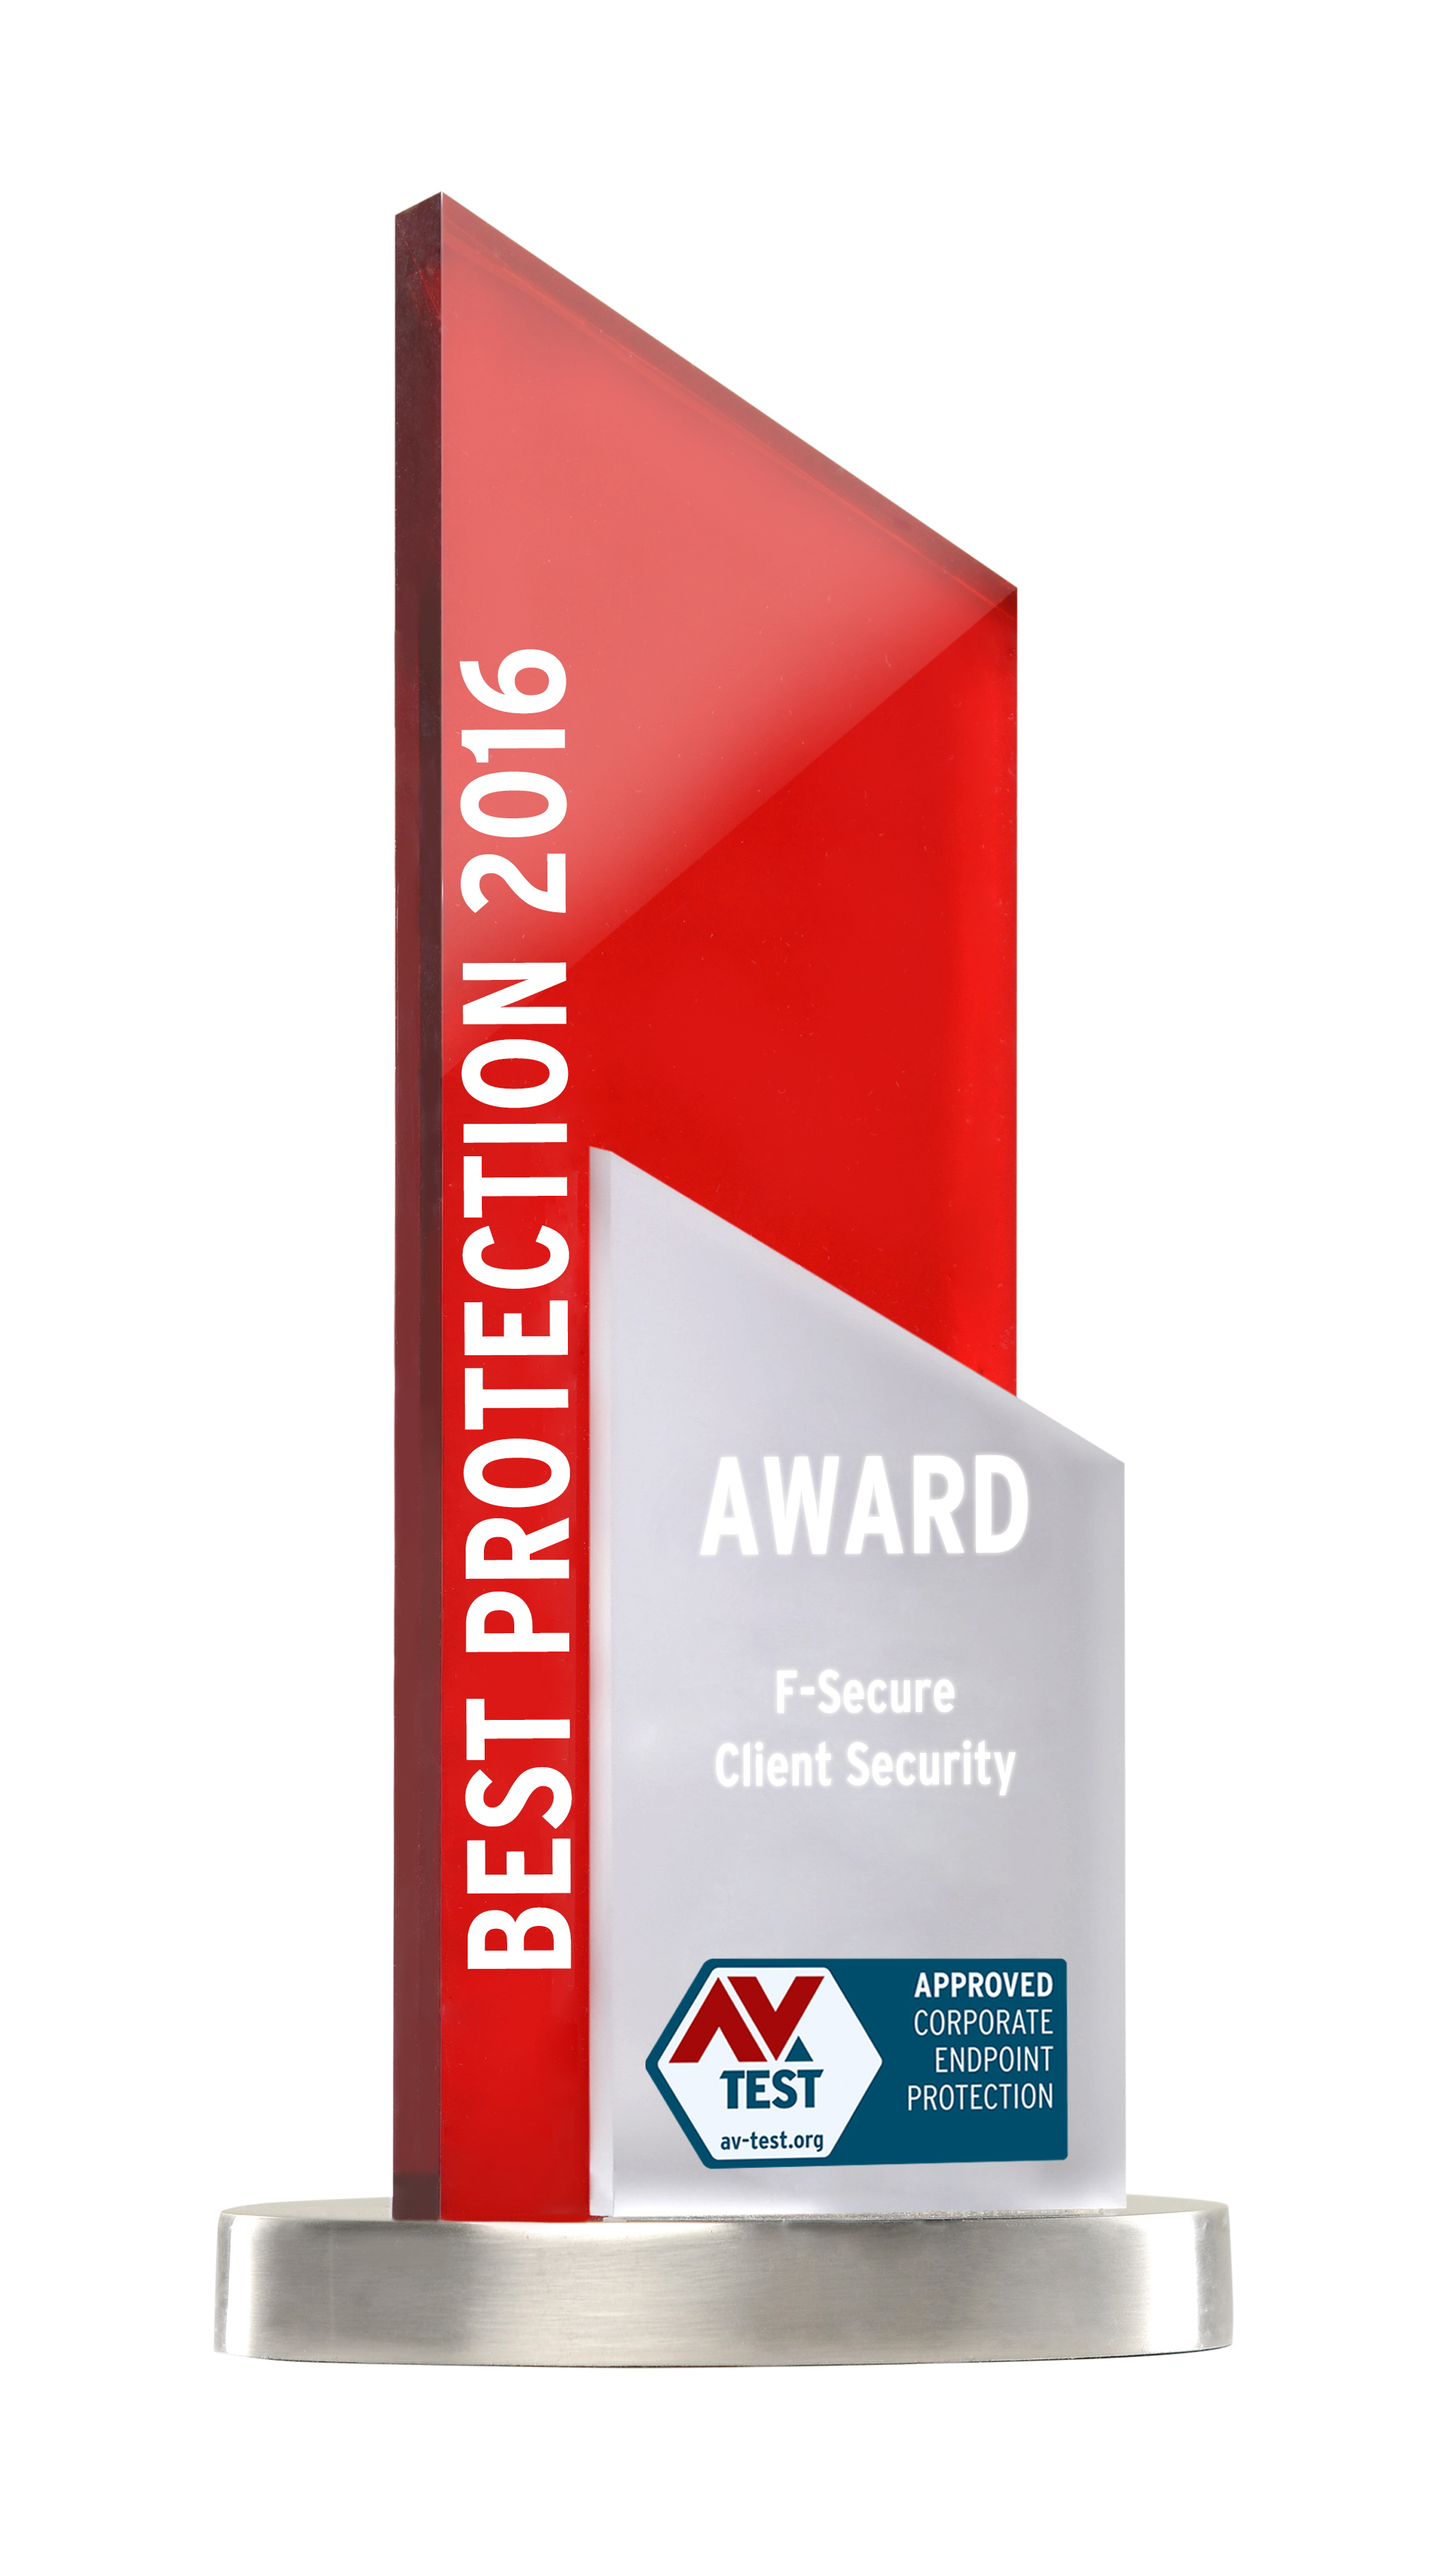 av-test_award_2016_best_protection_f-secure_client_security1